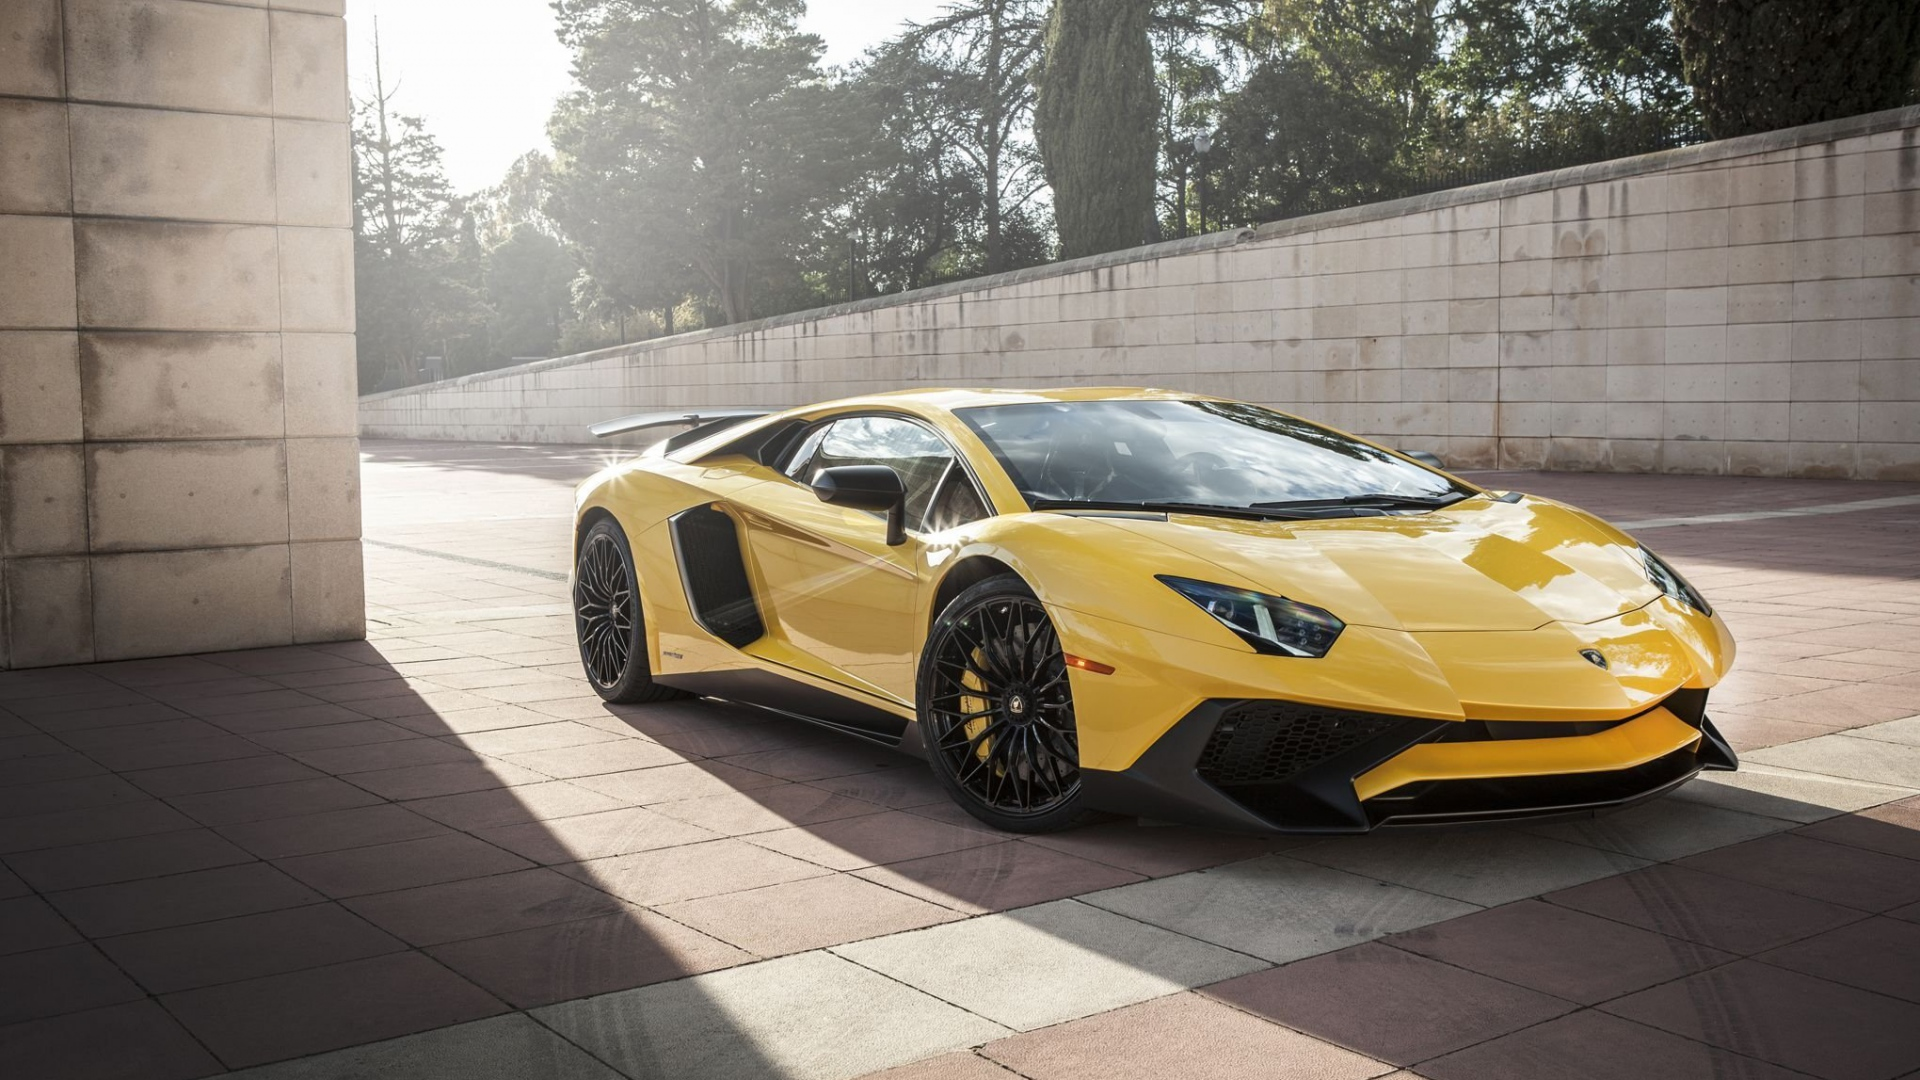 Free Download Lamborghini Aventador Sv Hd Wallpapers 1920x1080